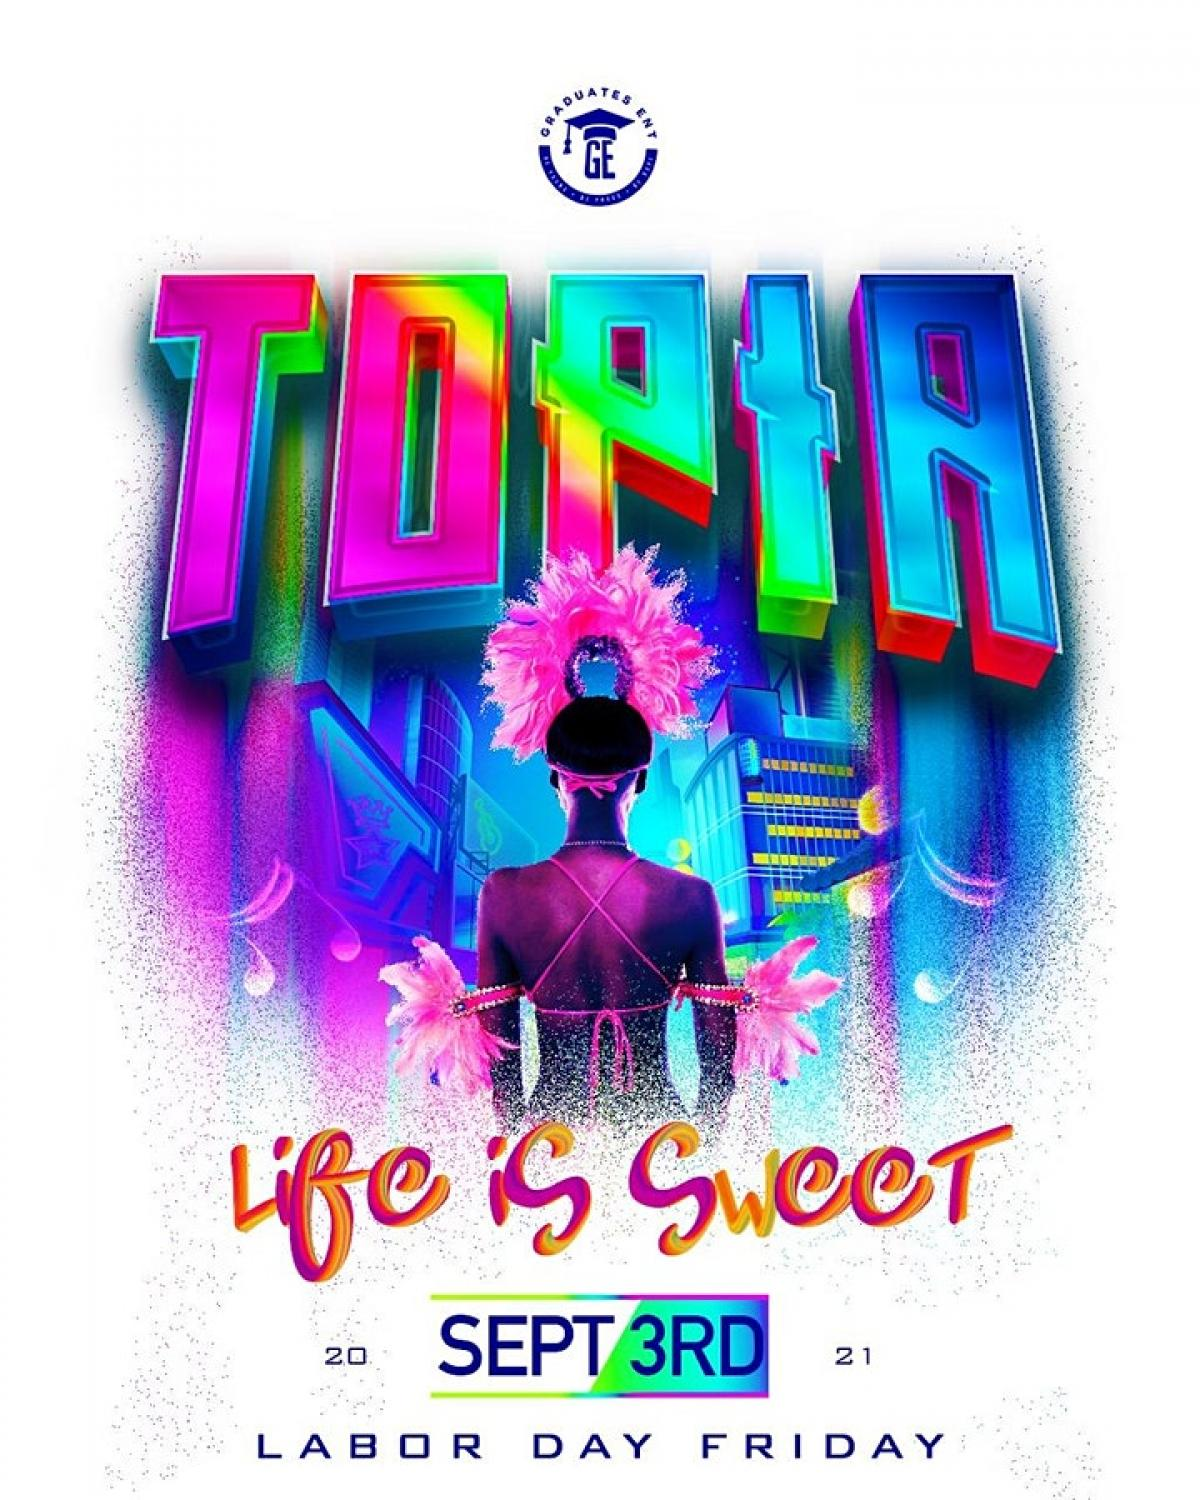 ToPiA - Life Is Sweet flyer or graphic.